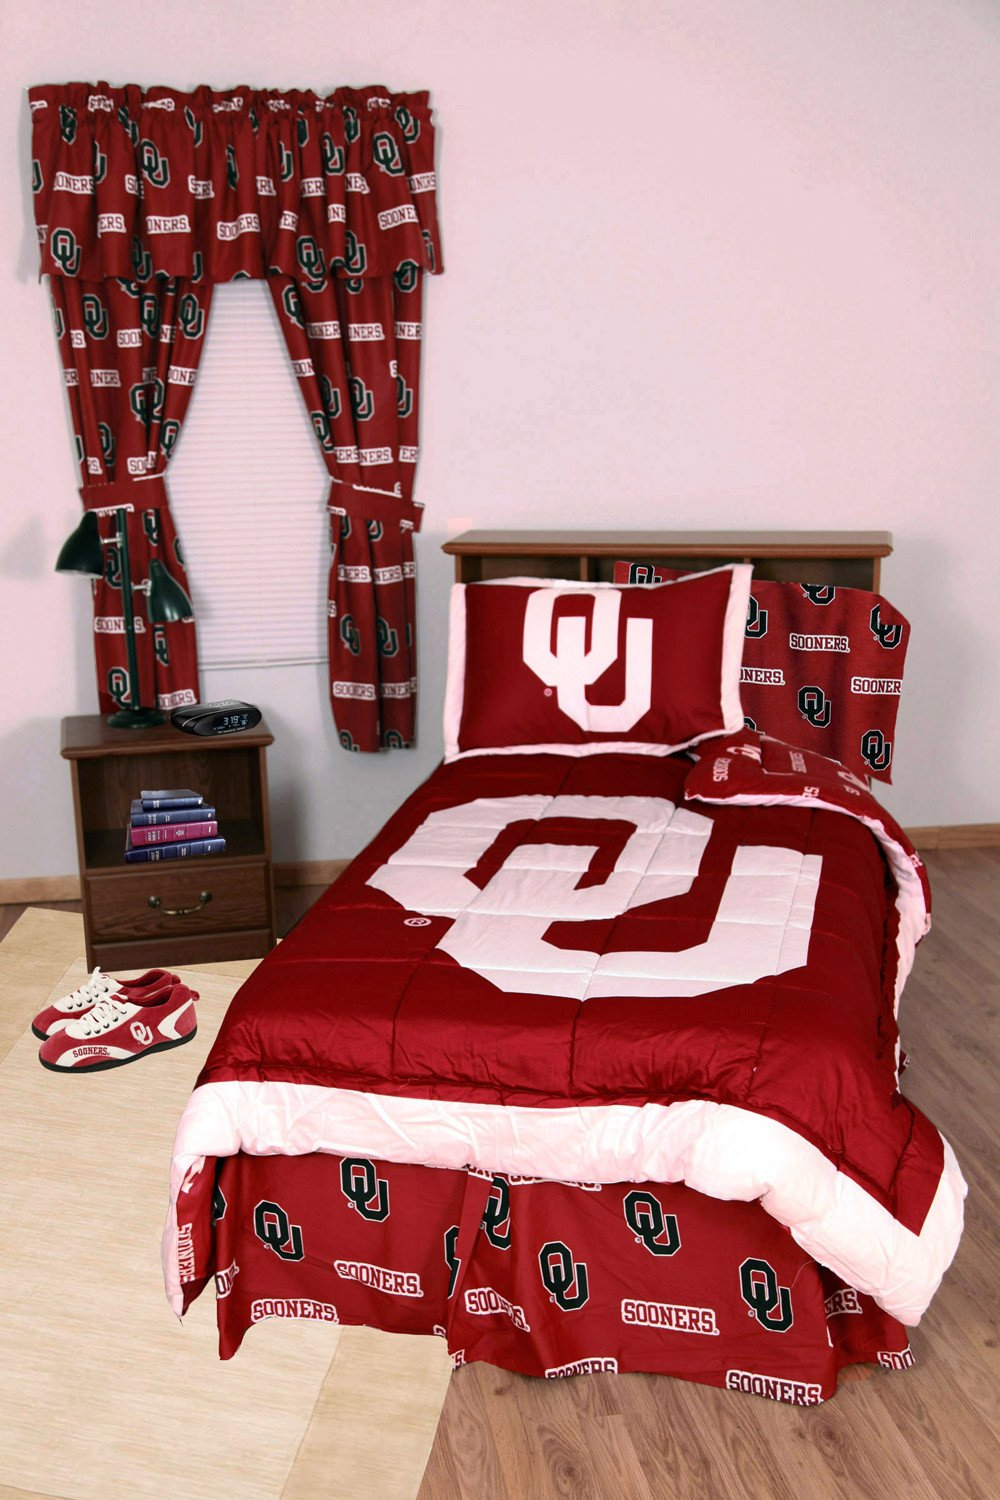 Oklahoma Bed in a Bag Queen - With Team Colored Sheets - OKLBBQU by College Covers from College Covers